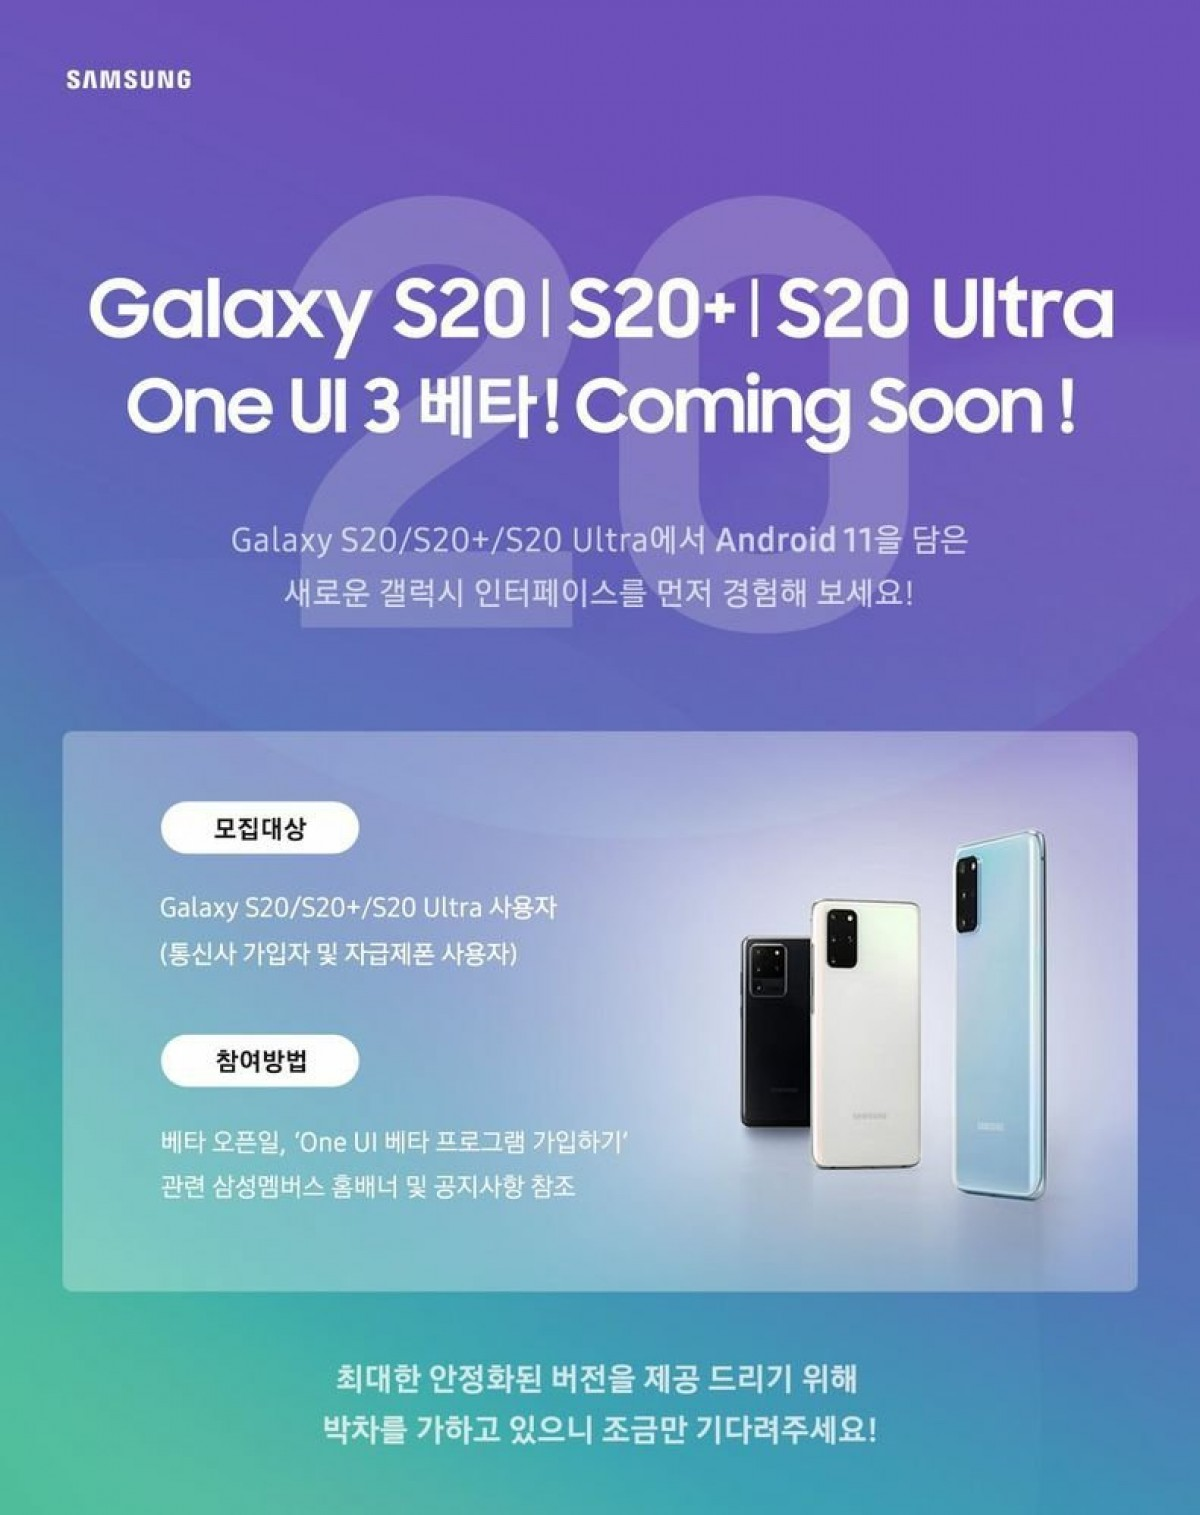 Samsung confirms One UI 3.0 Beta based on Android 11 coming to Galaxy S20 lineup